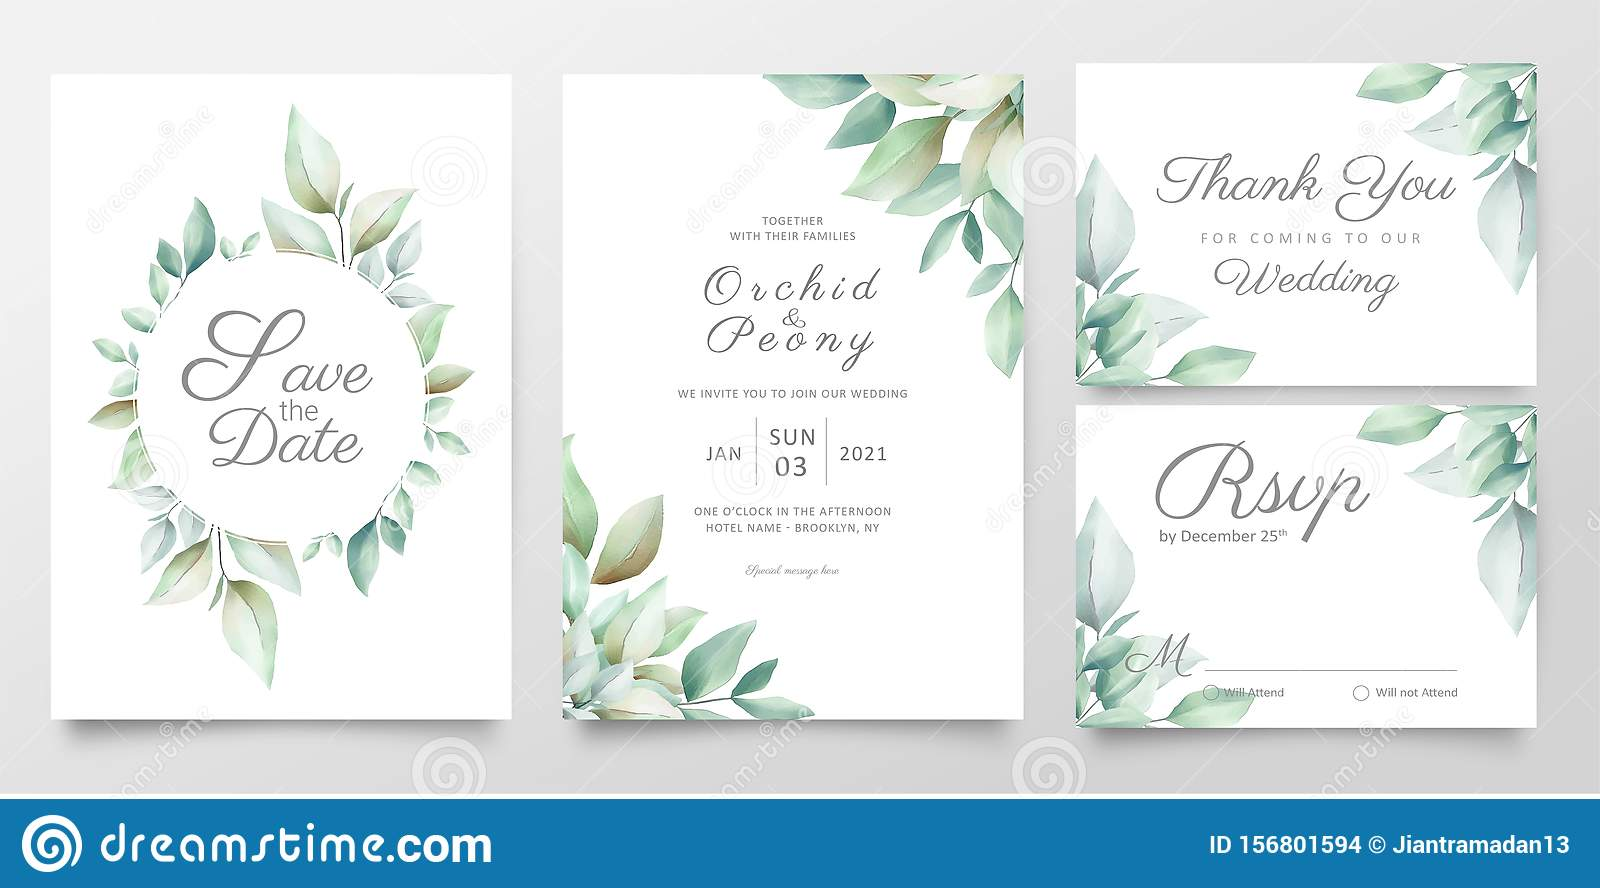 https www dreamstime com floral wedding invitation card template set realistic watercolor leaves elegant greenery save date invite thank you rsvp image156801594